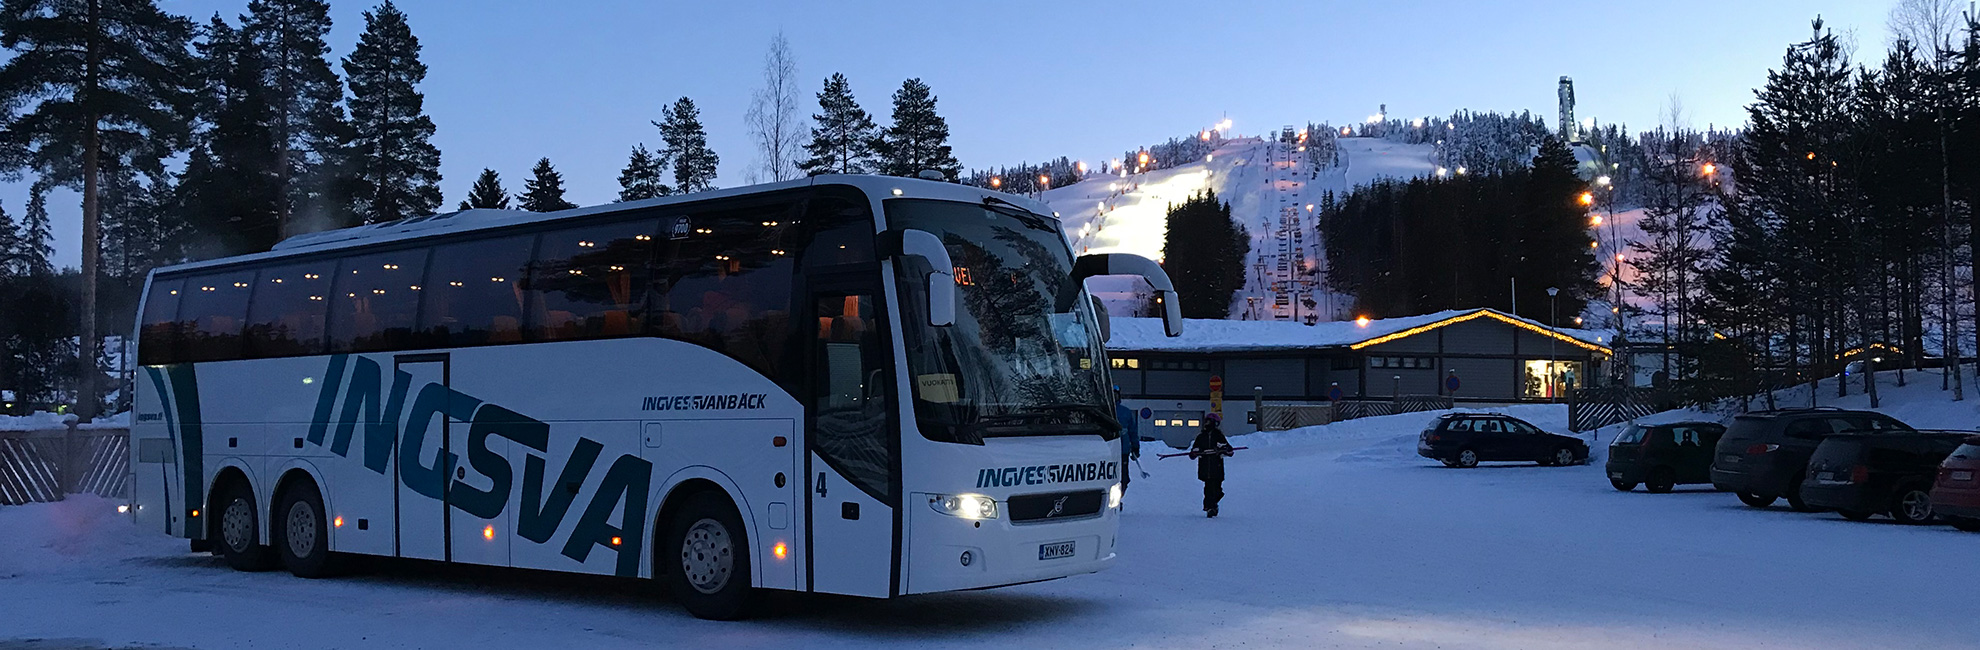 tilausajot charter-buses finland tilausbussi